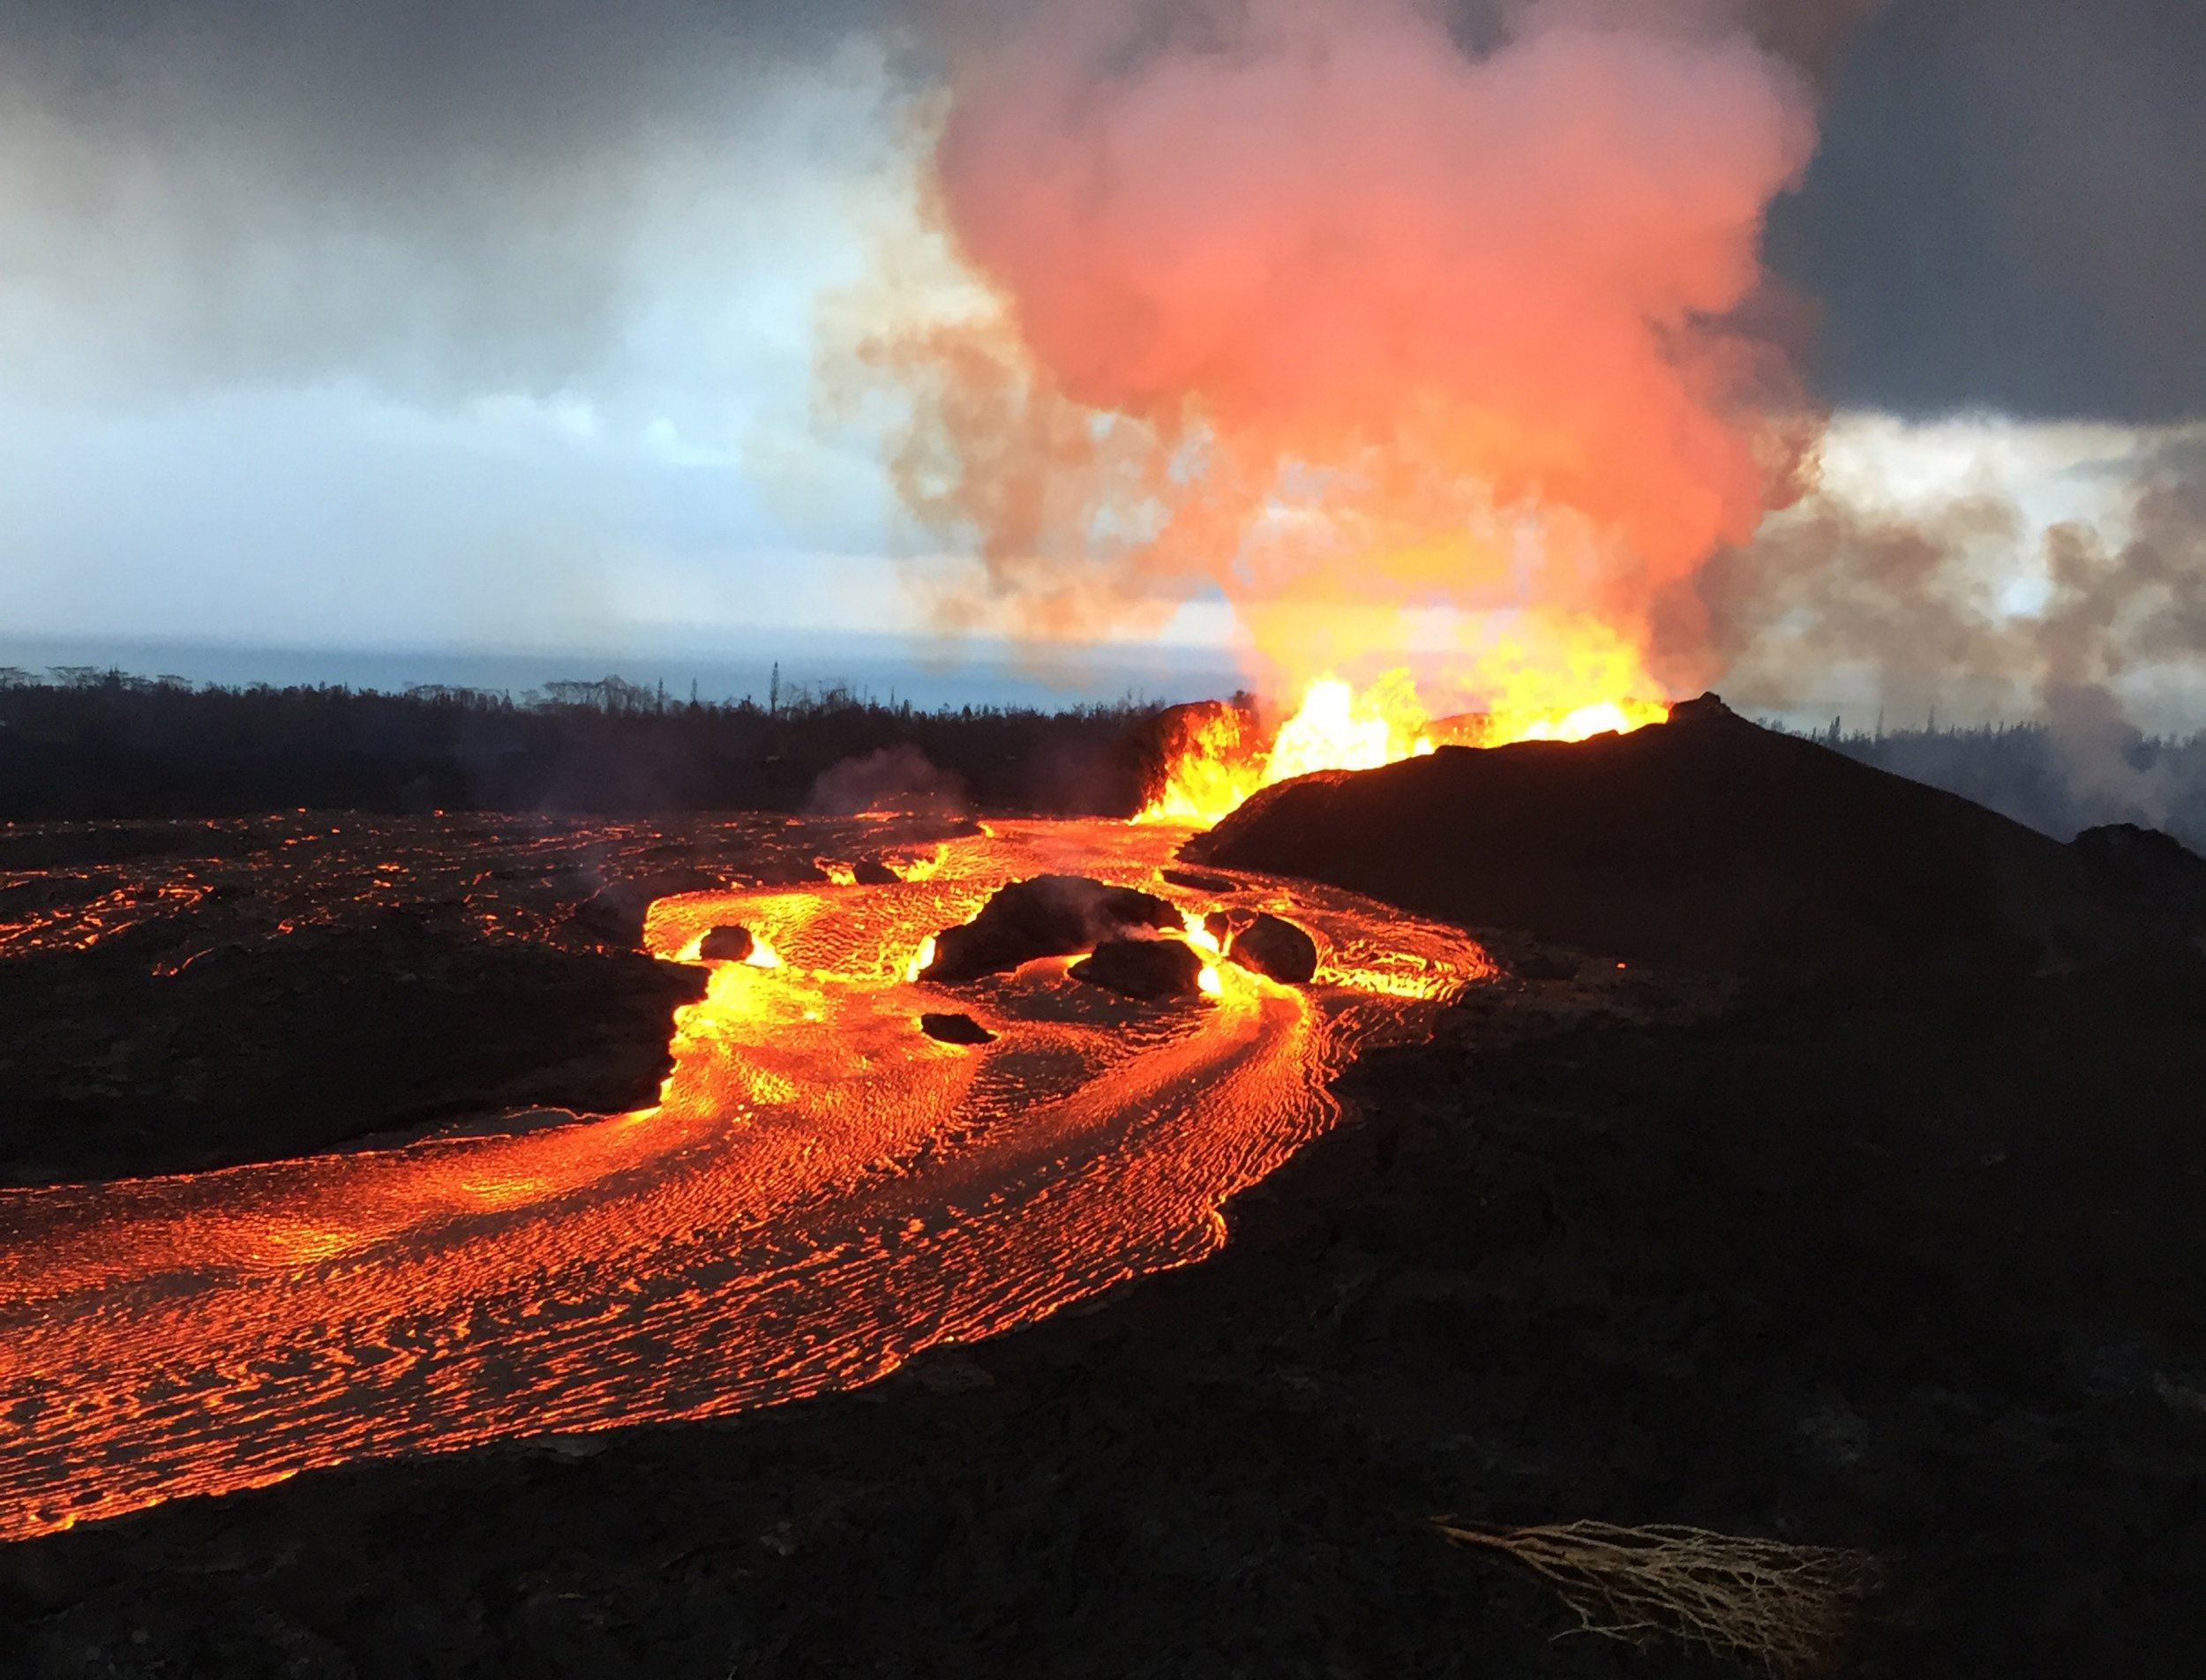 epa06805029 A handout photo made available by the United States Geological Survey (USGS) on 13 June 2018 shows Kilauea volcano's Fissure 8 fountains that reportedly reached heights up to 160 feet (48 meters) overnight, Hawaii, USA, 12 June 2108. Lava fragments falling from the fountains are building a cinder-and-spatter cone around the vent, with the highest part of the cone (about 125 feet high, 38 meters high) on the downwind side. EPA/USGS HANDOUT HANDOUT EDITORIAL USE ONLY/NO SALES